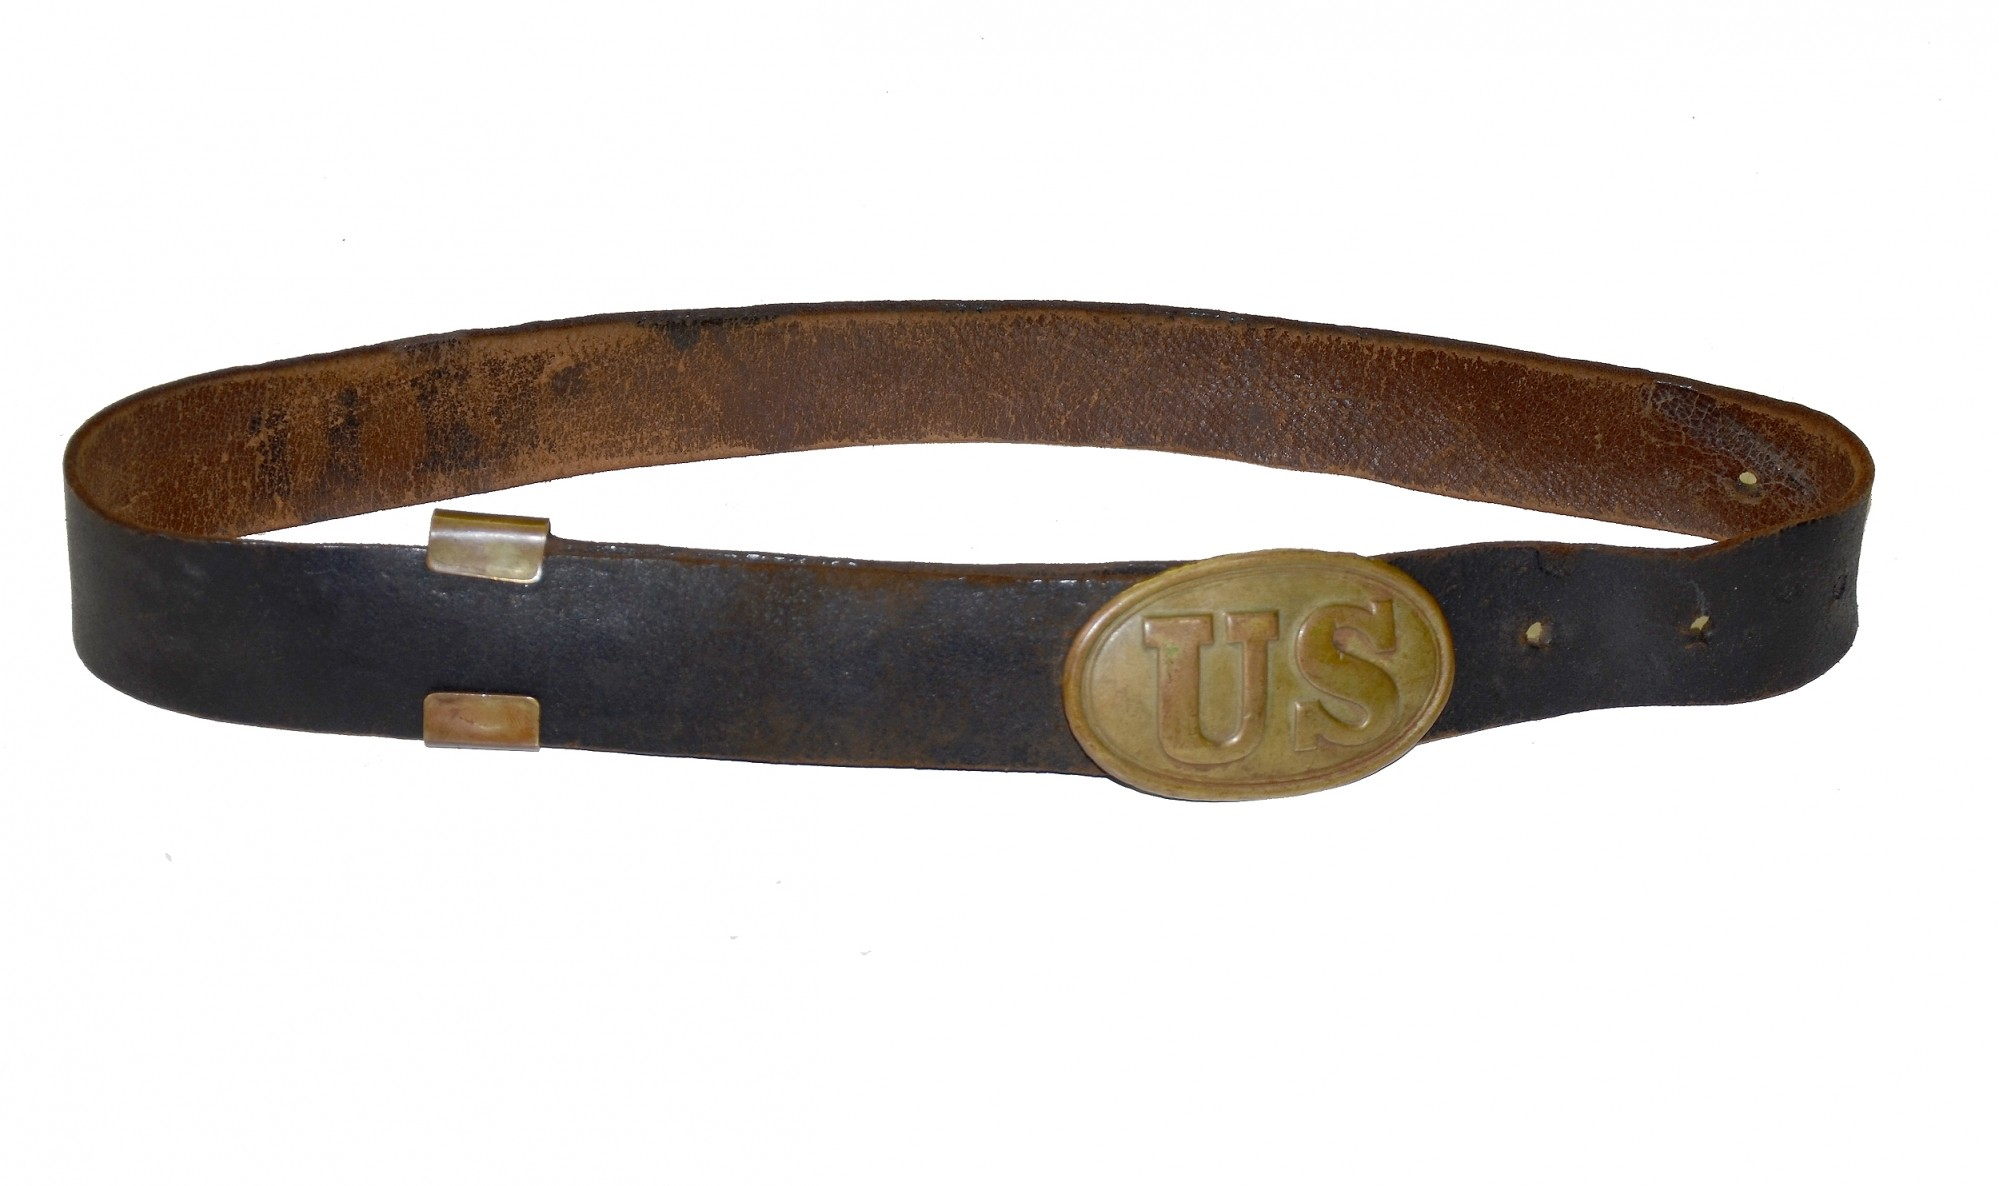 ARSENAL MARKED US PATTERN 1839 ENLISTEDMAN'S BELT PLATE AND BELT